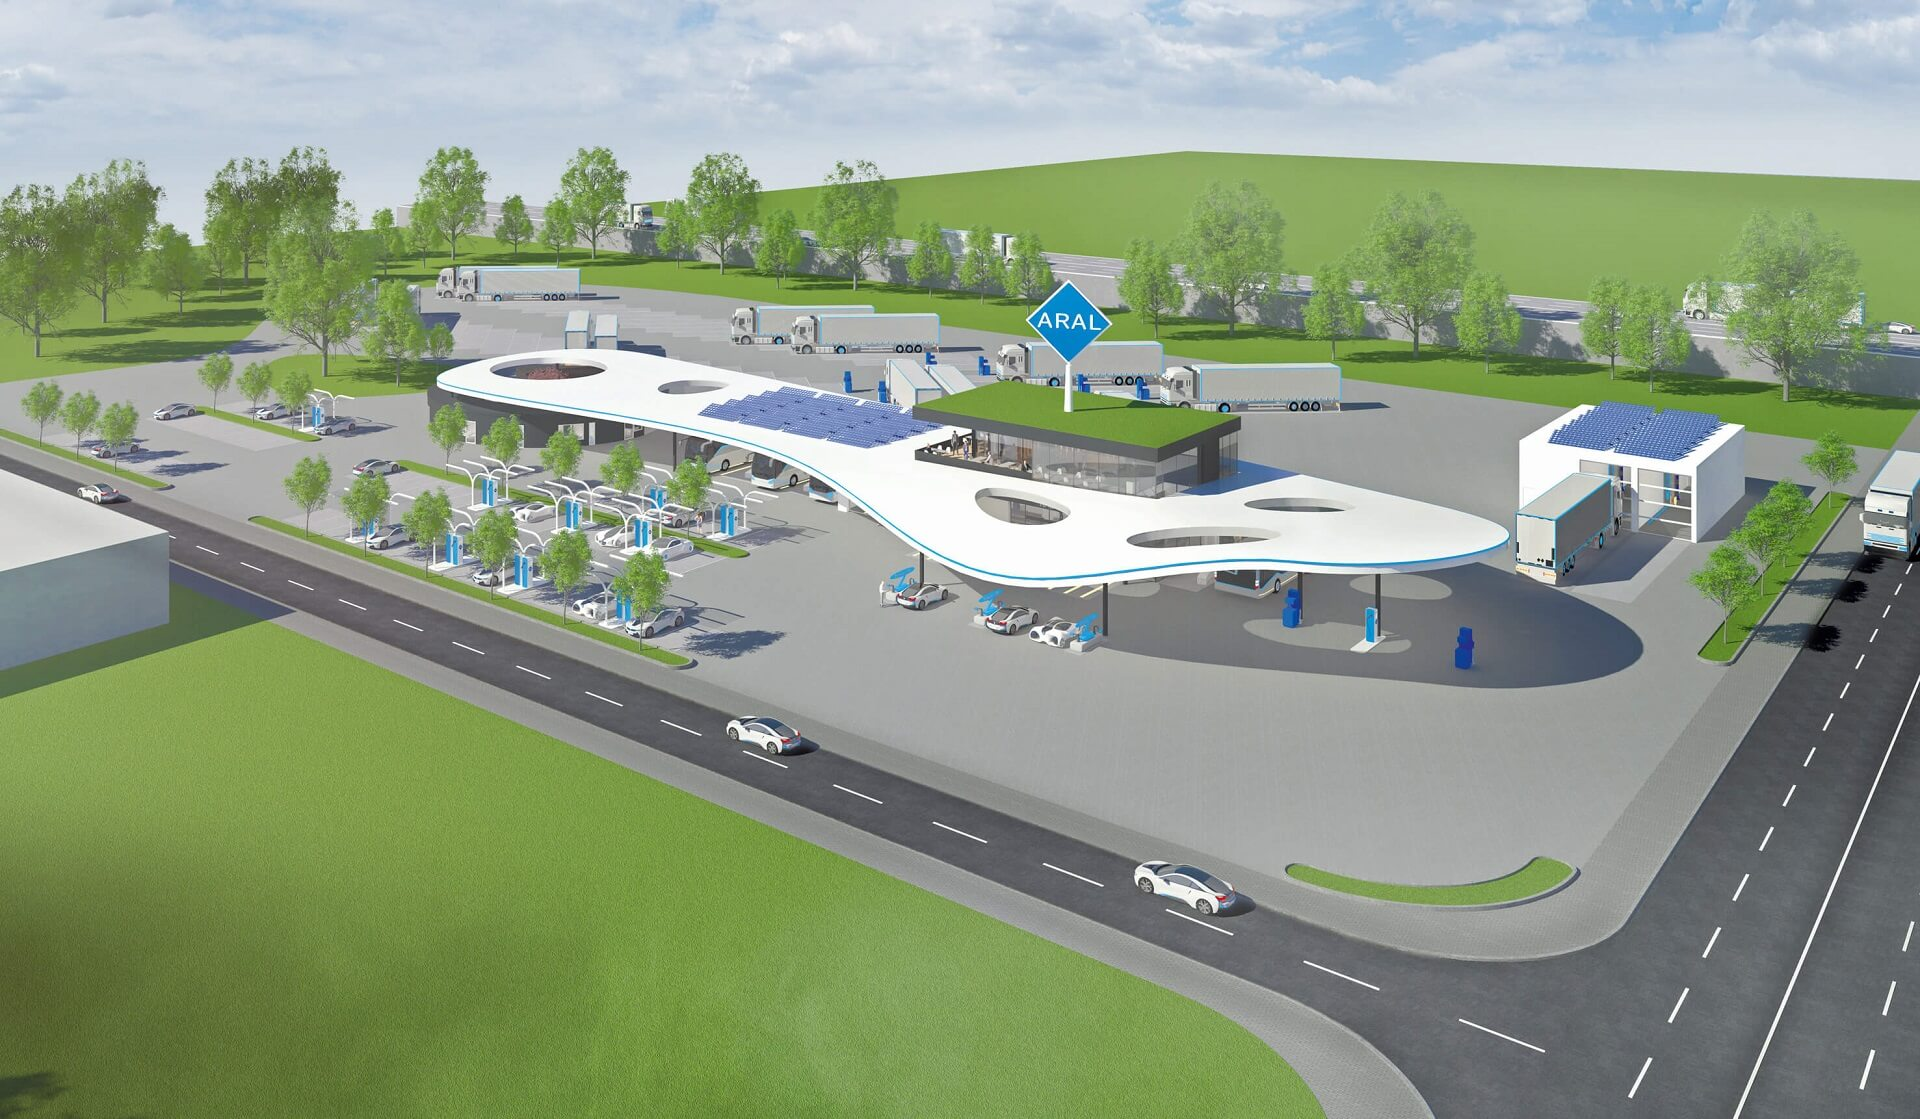 will there still be gas stations in the future?